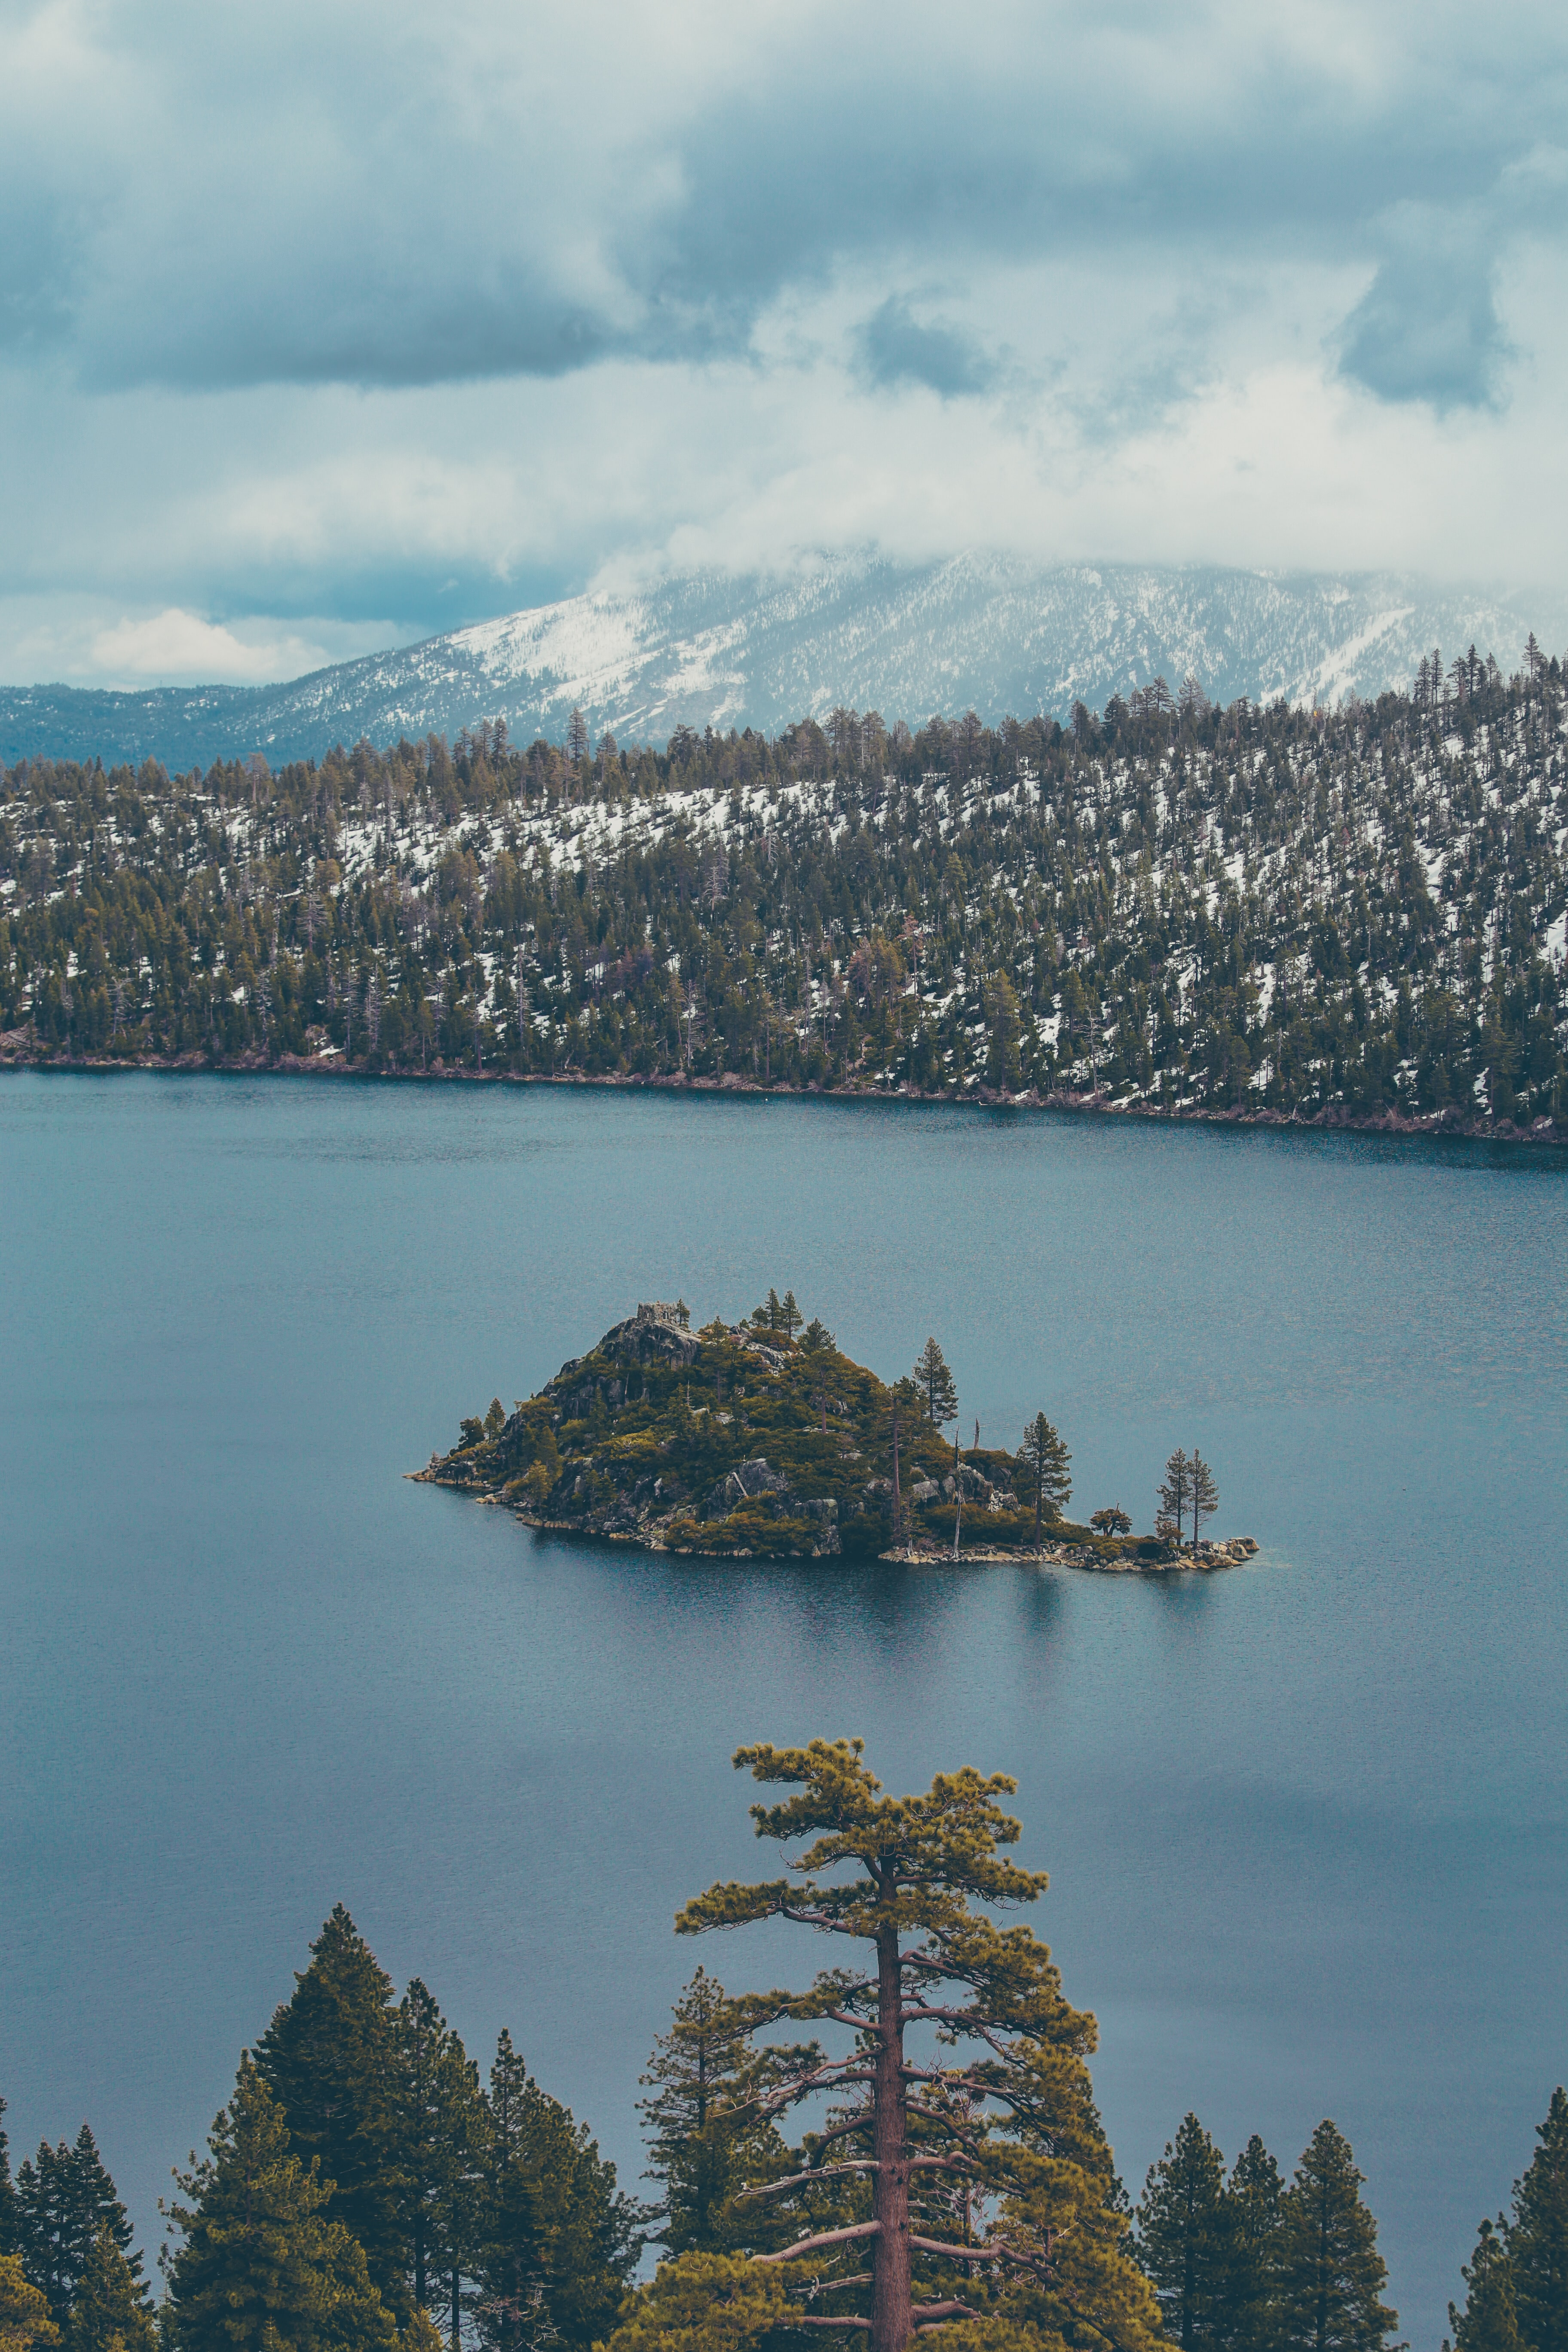 A small island in the middle of the tree-lined Lake Tahoe